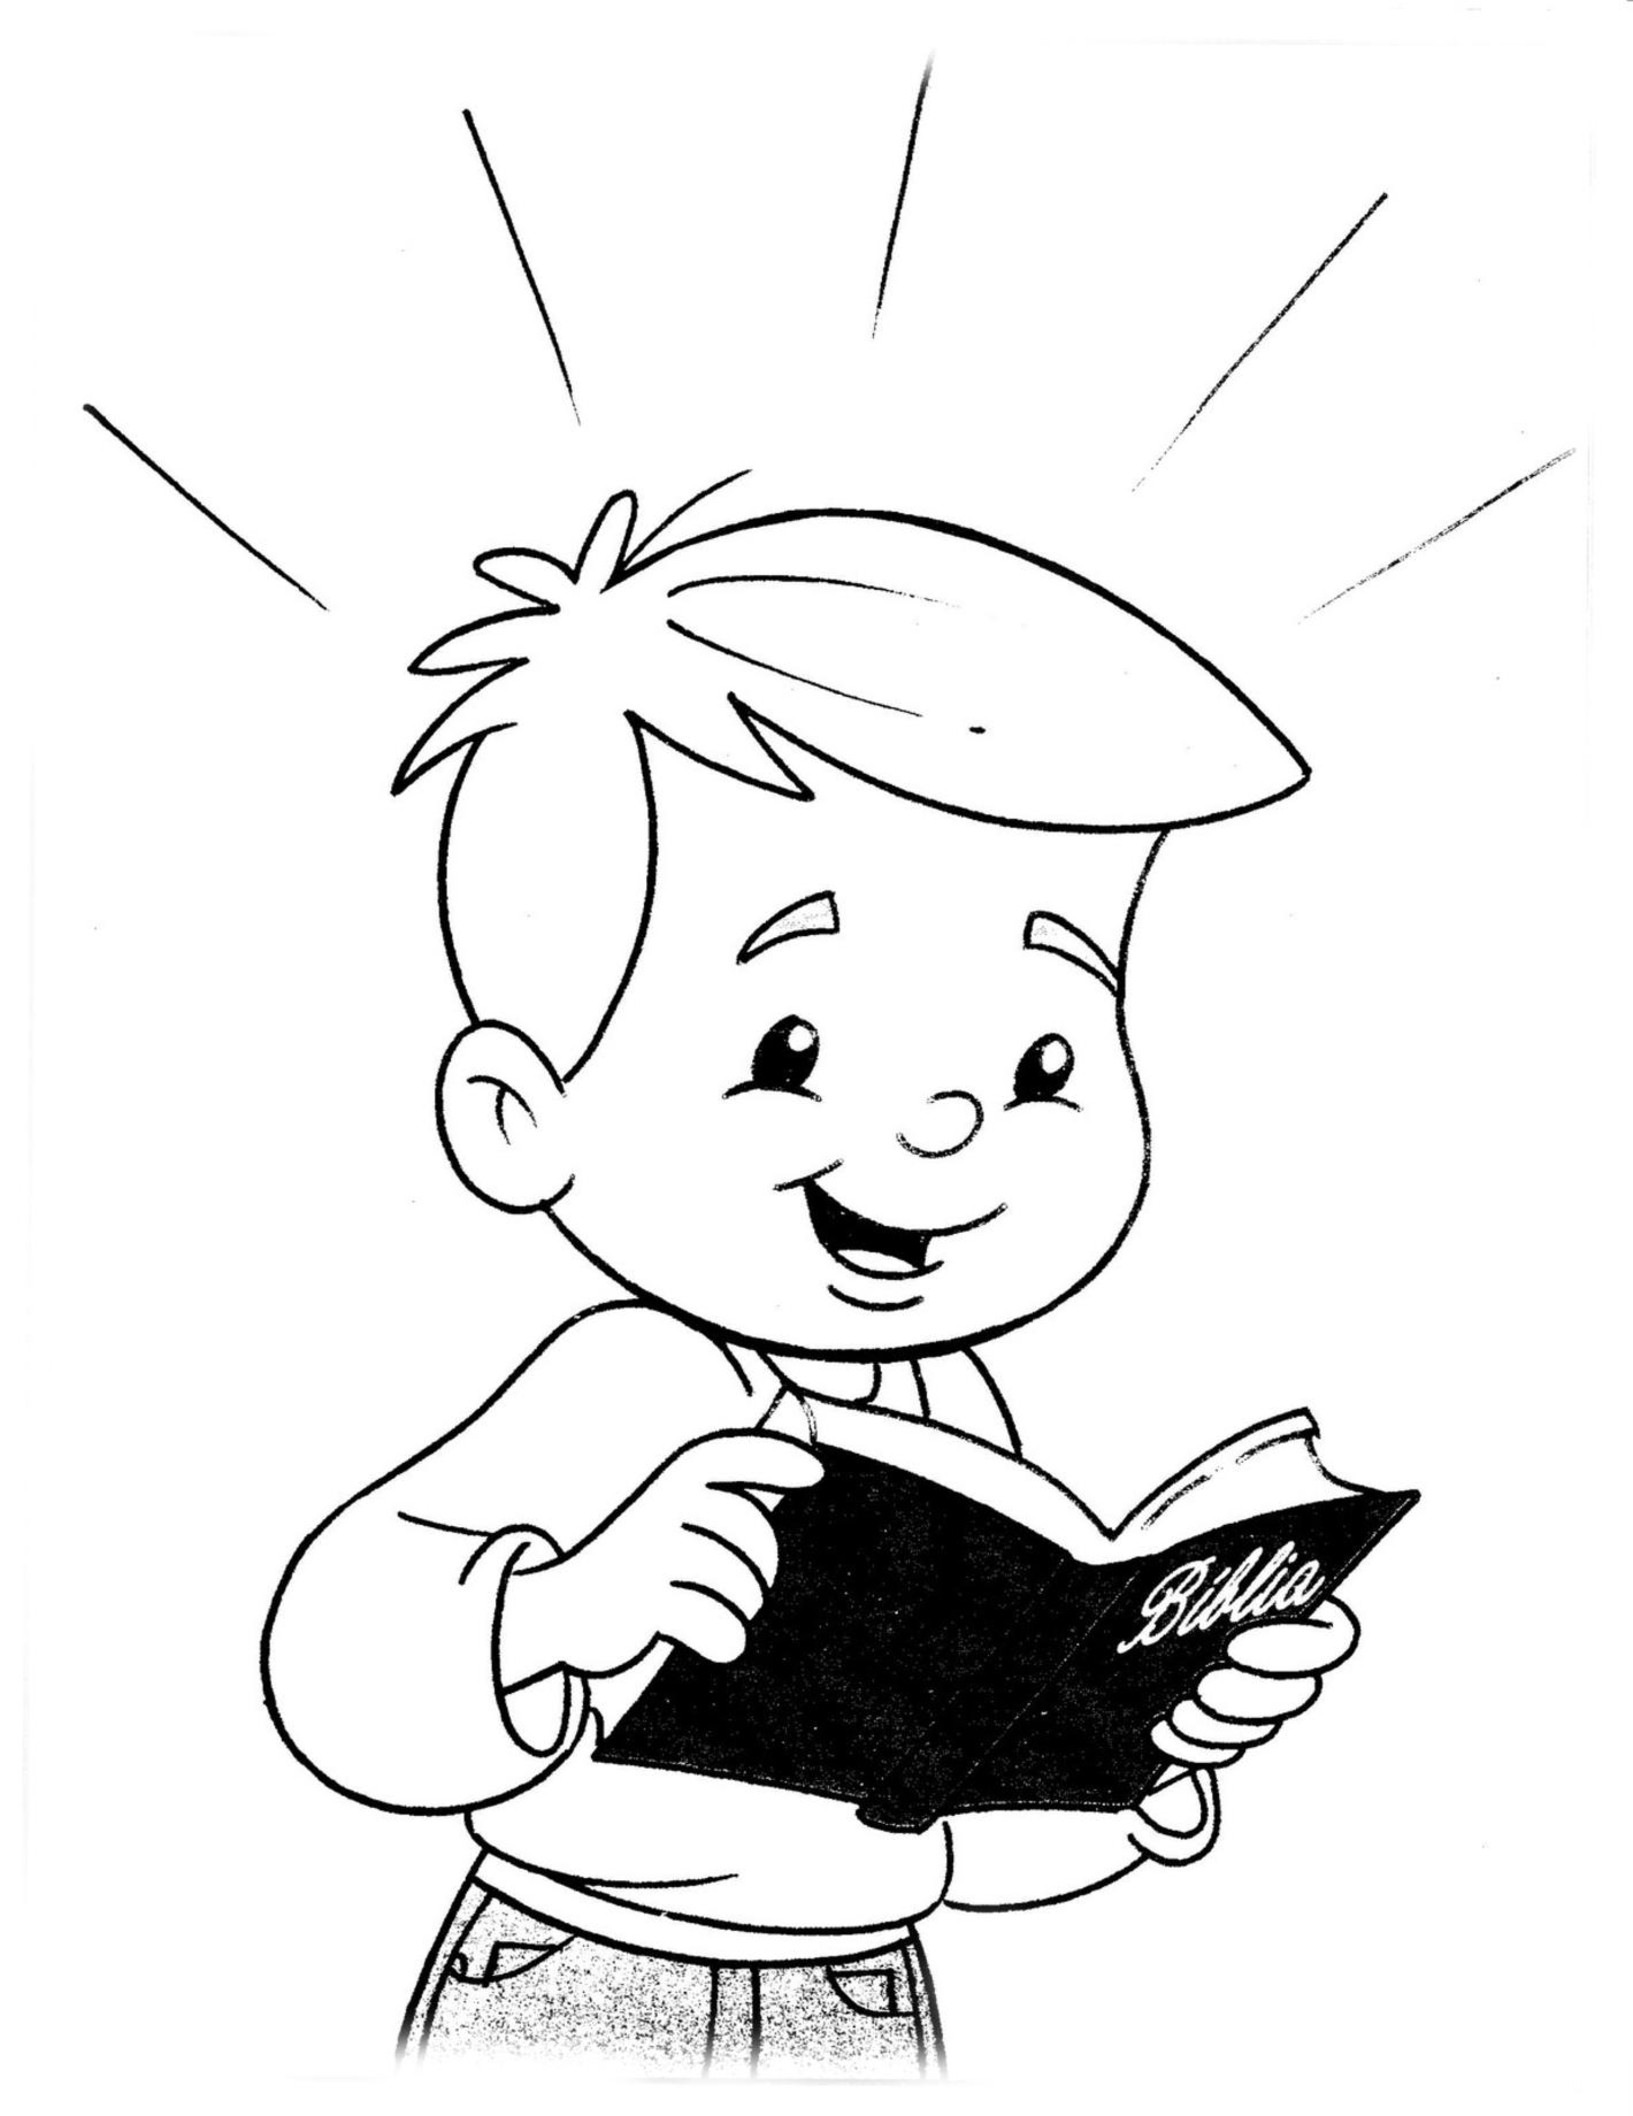 bible coloring pages for kids - HD1297×1680